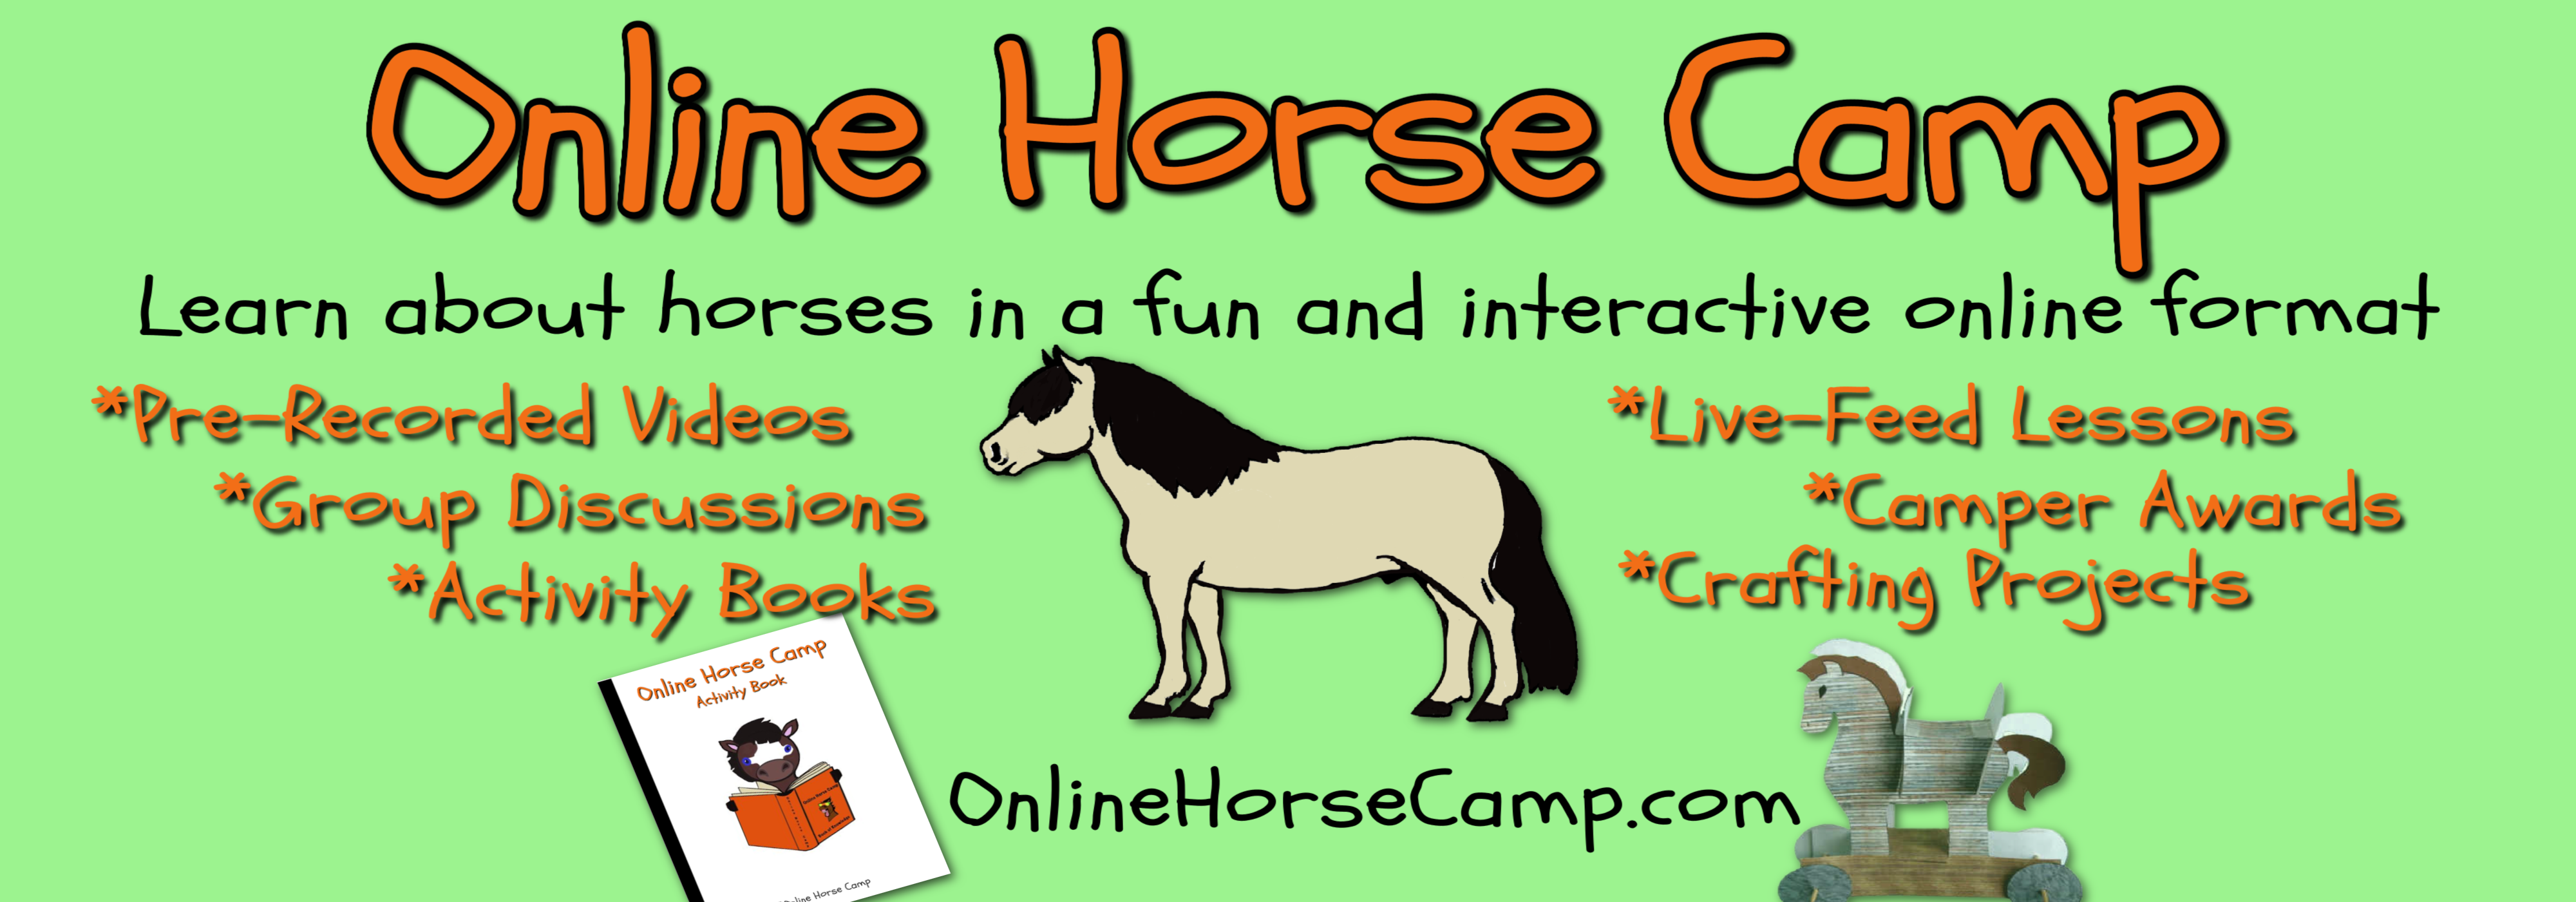 Online Horse Camp words copy (2)